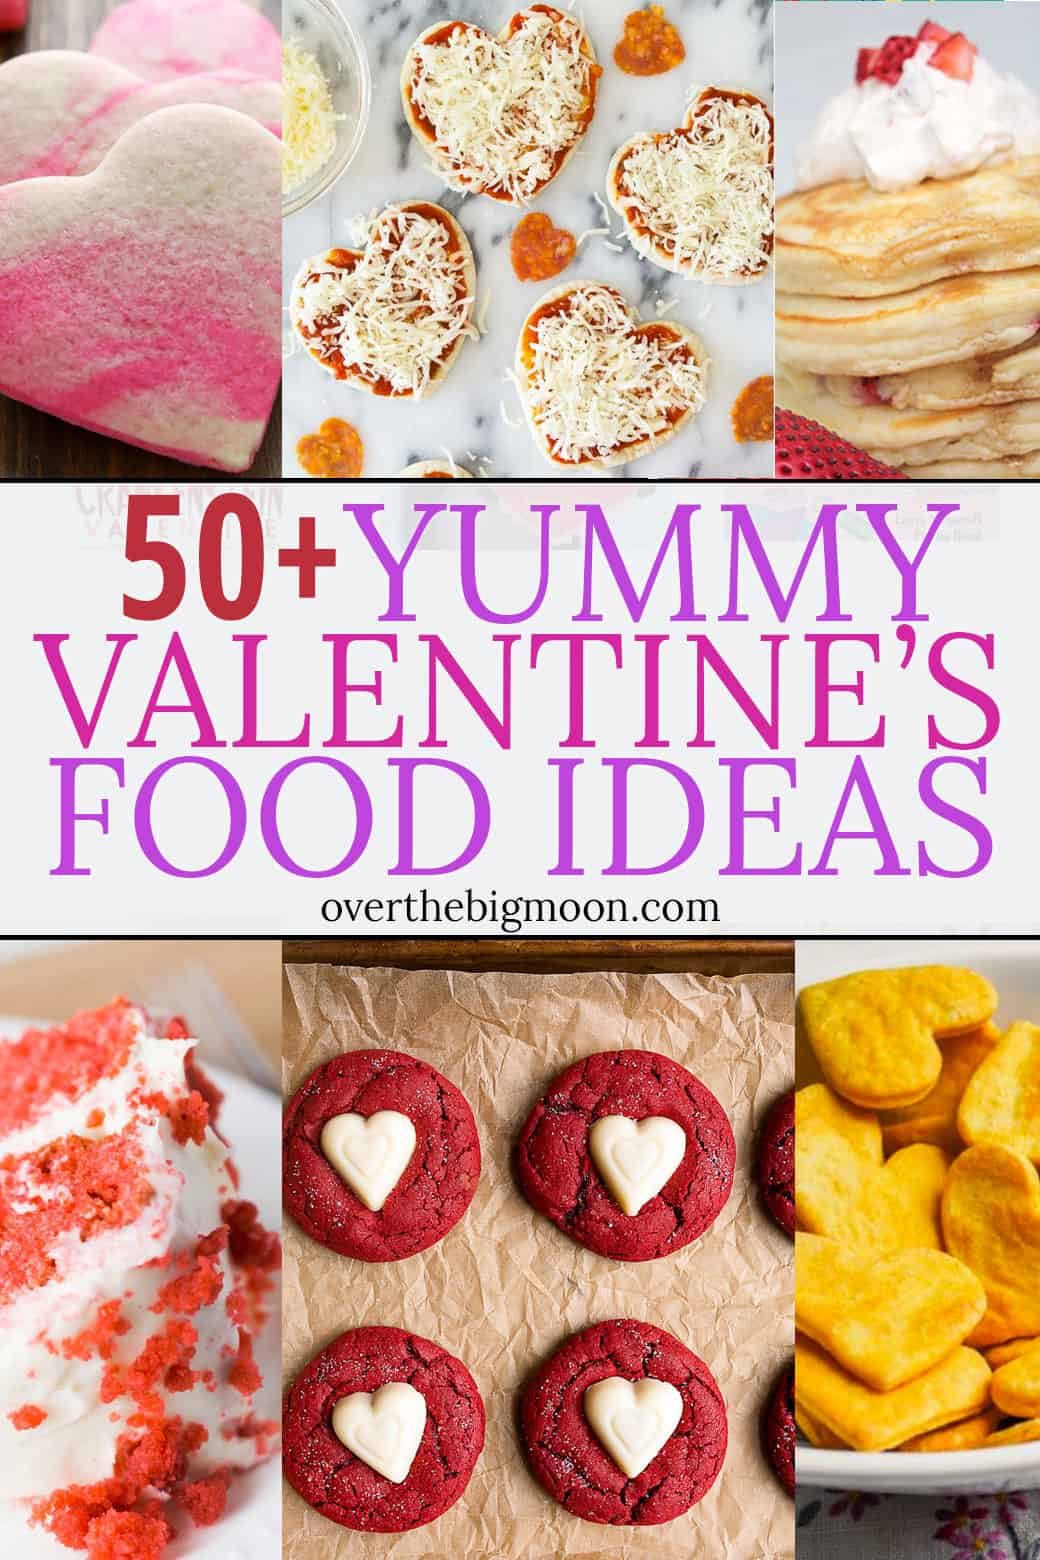 5+ Yummy Valentine's Day Food Ideas -- a super fun and easy way to make Valentine's Day extra special! From overthebigmoon.com!